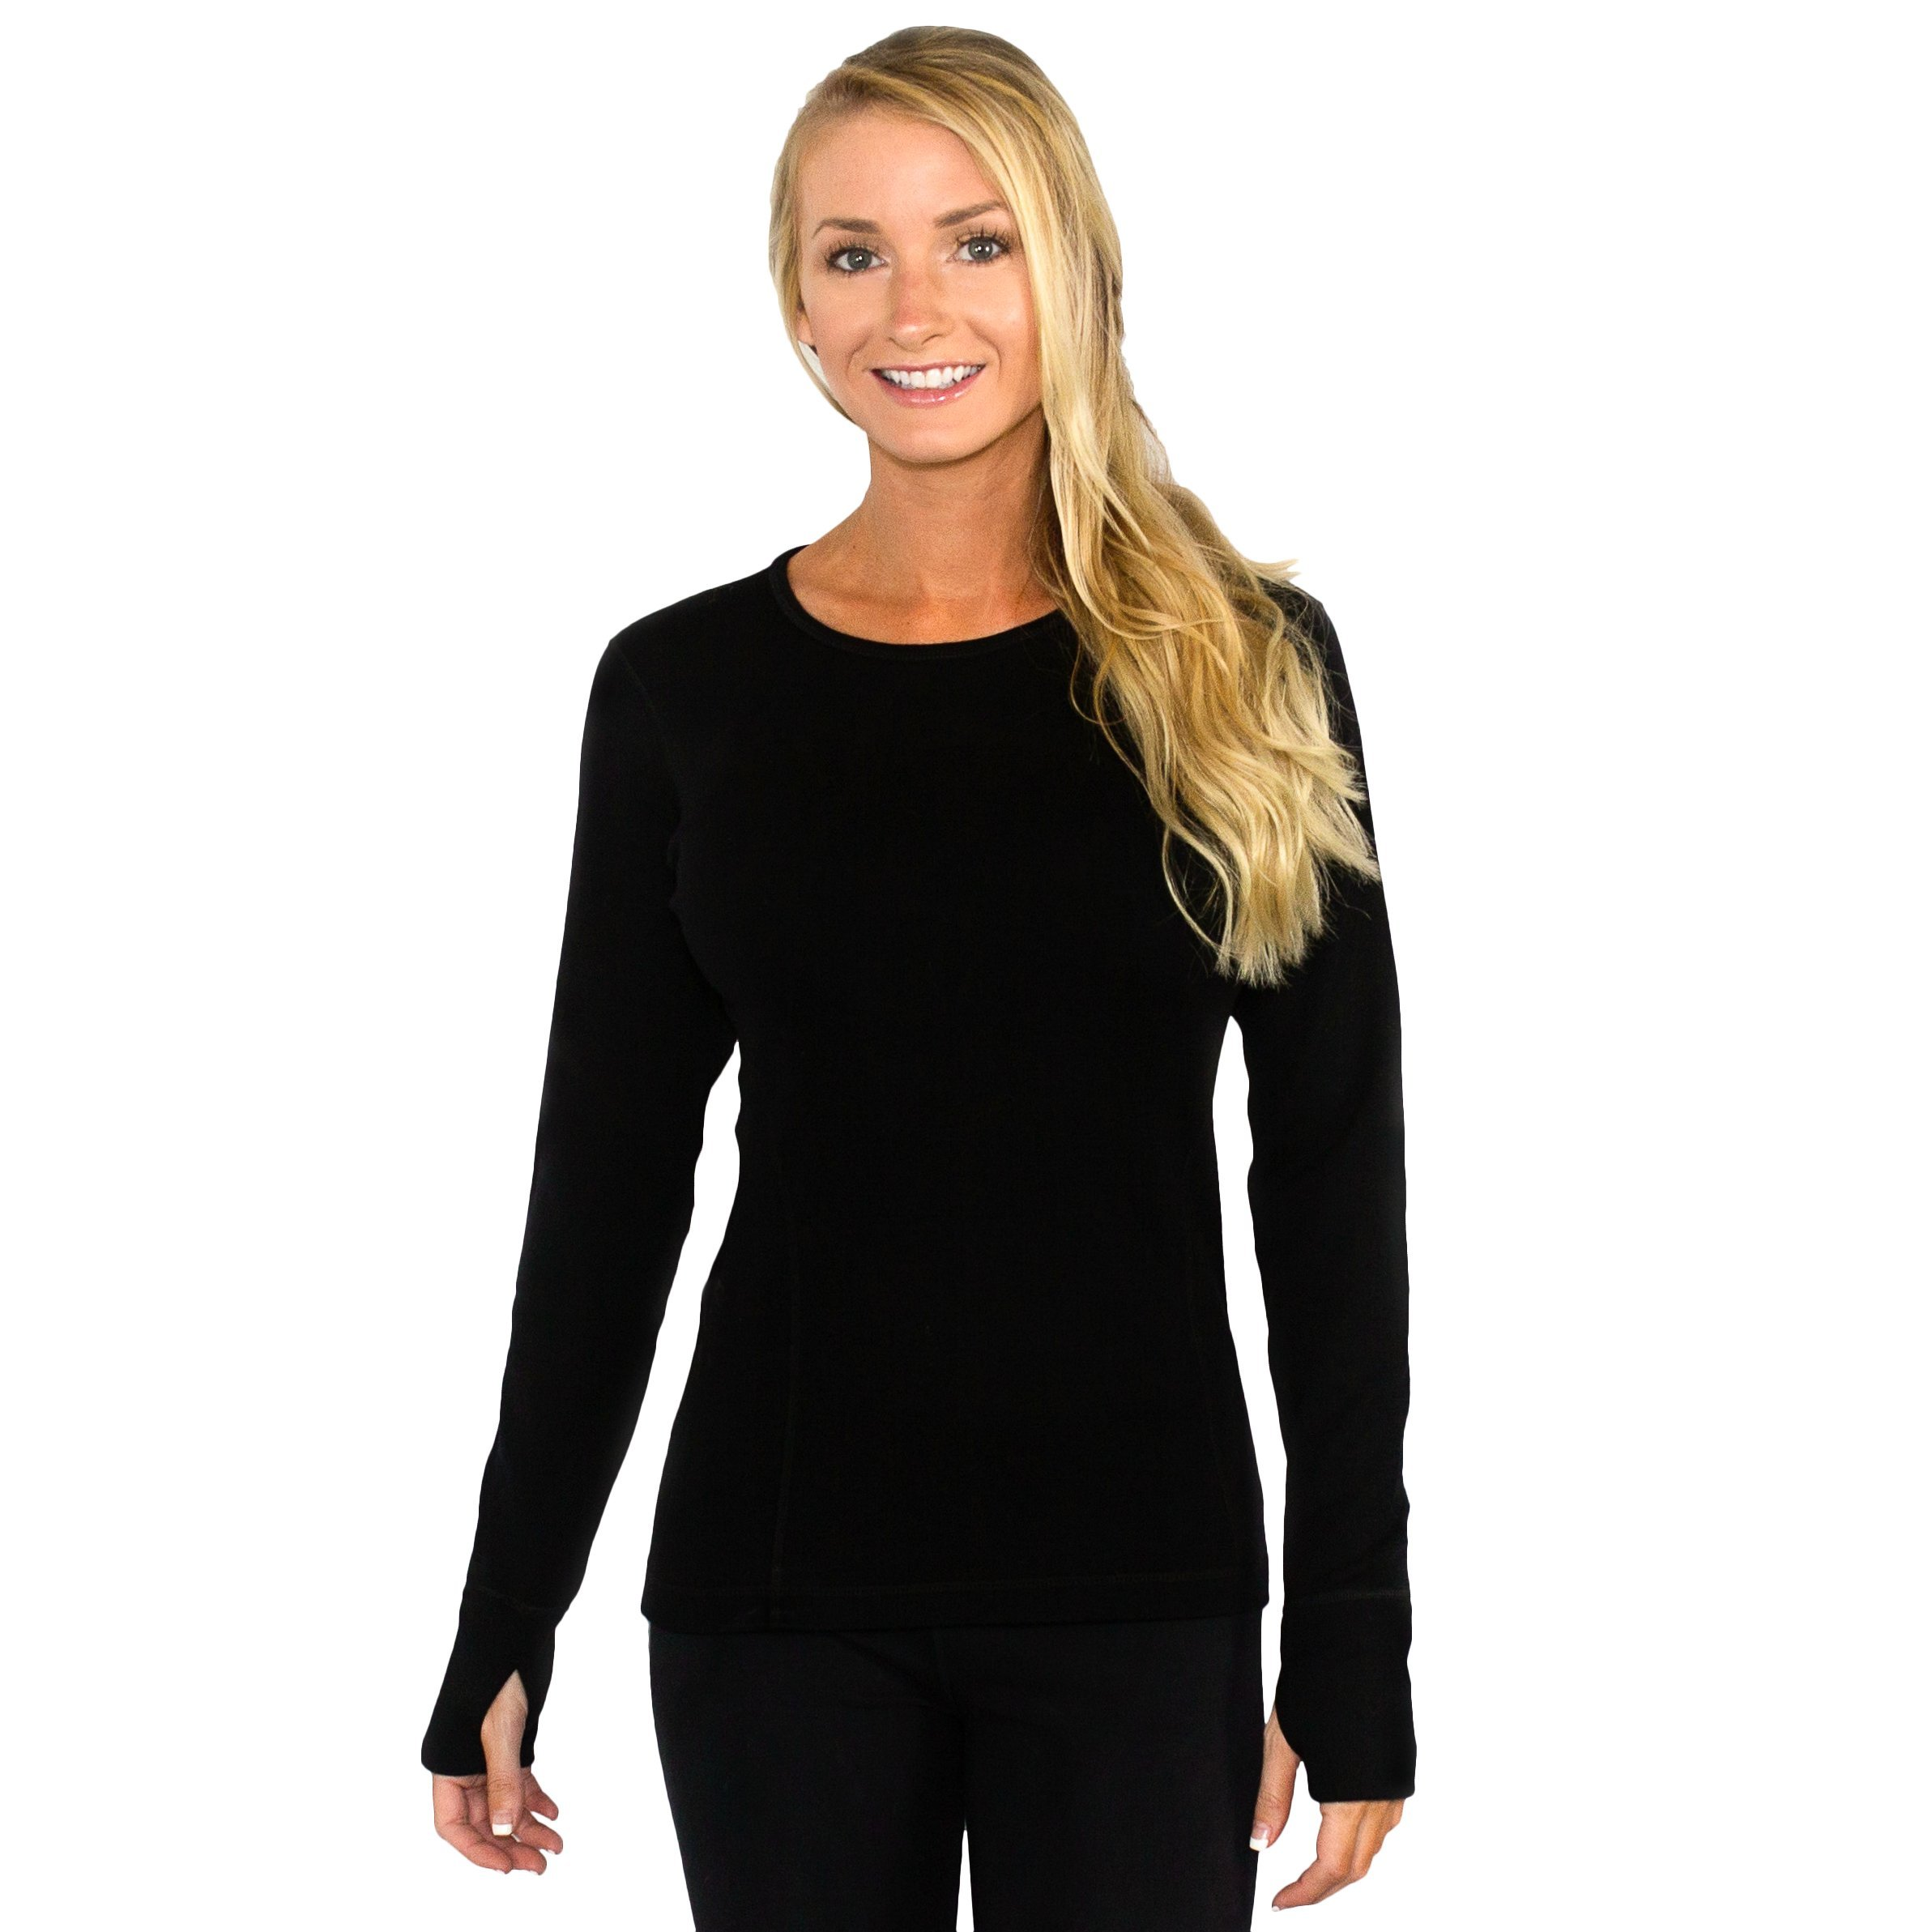 WoolX X752 Womens Heavyweight Alpine Top - Black - SML